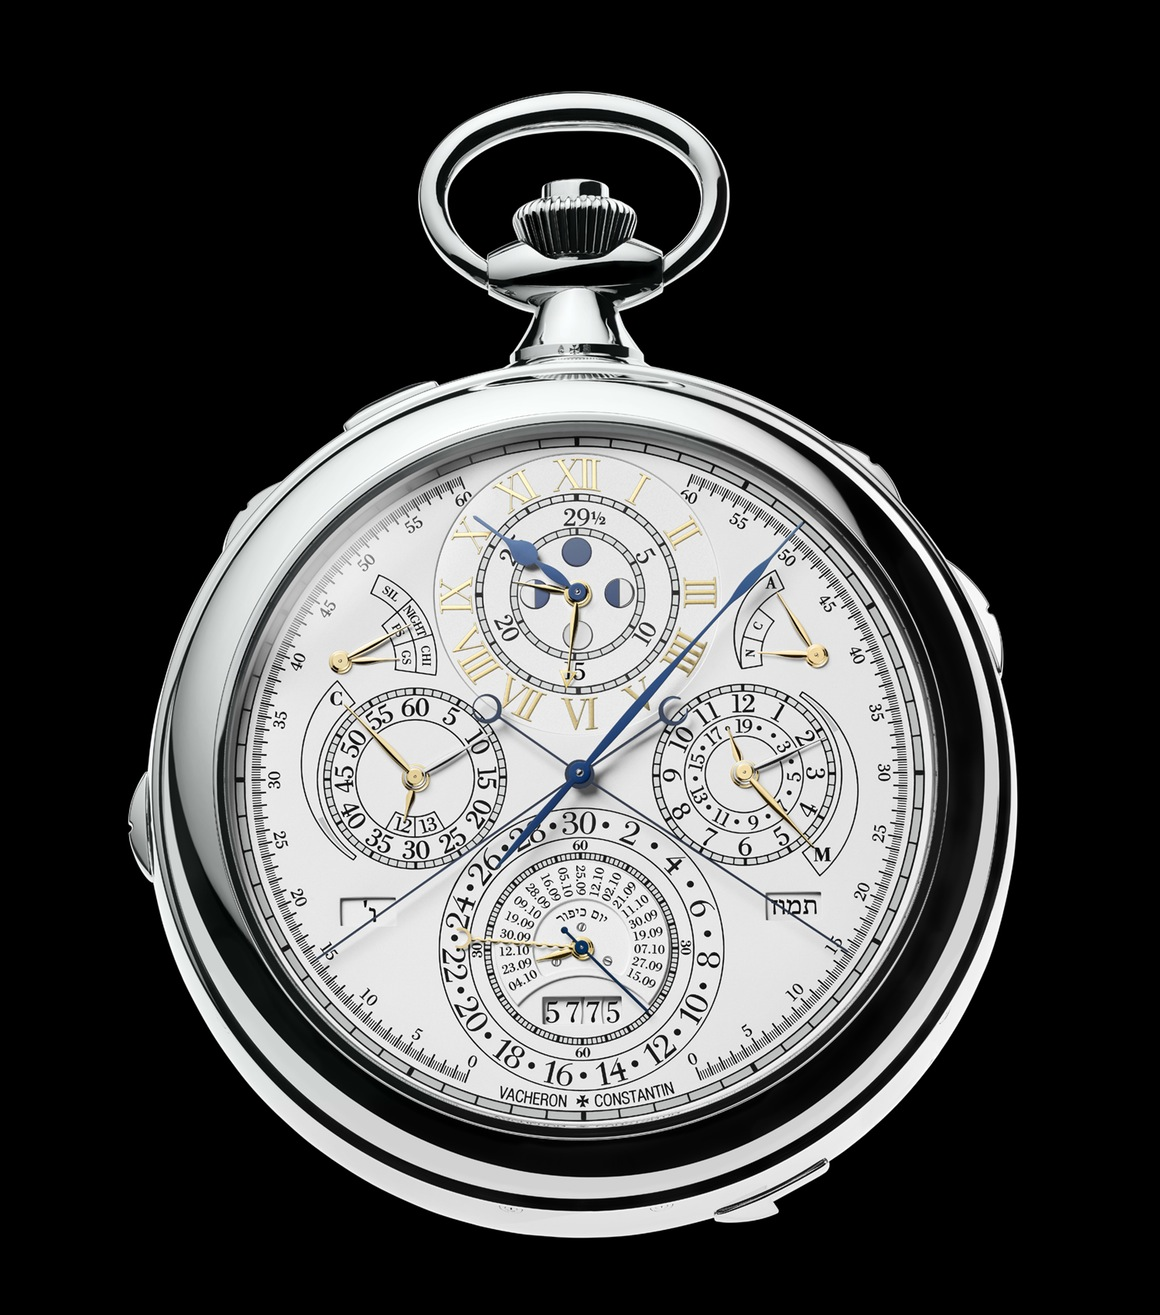 Vacheron Constantin Pocket Watch Reference 57260